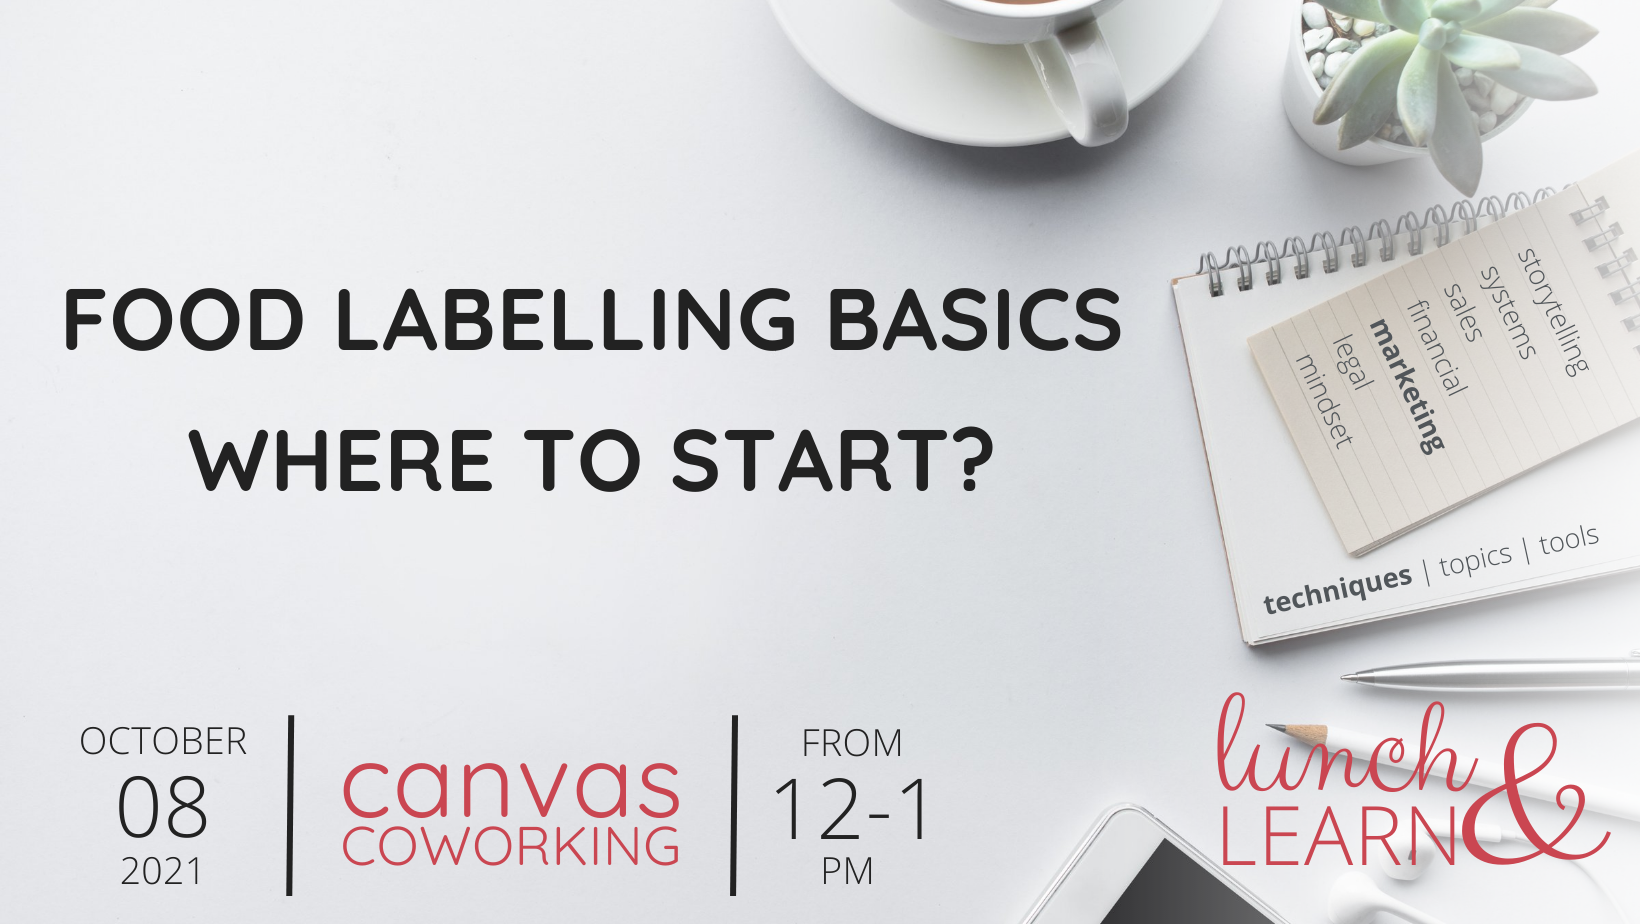 Food Labelling Basics - Where to START?